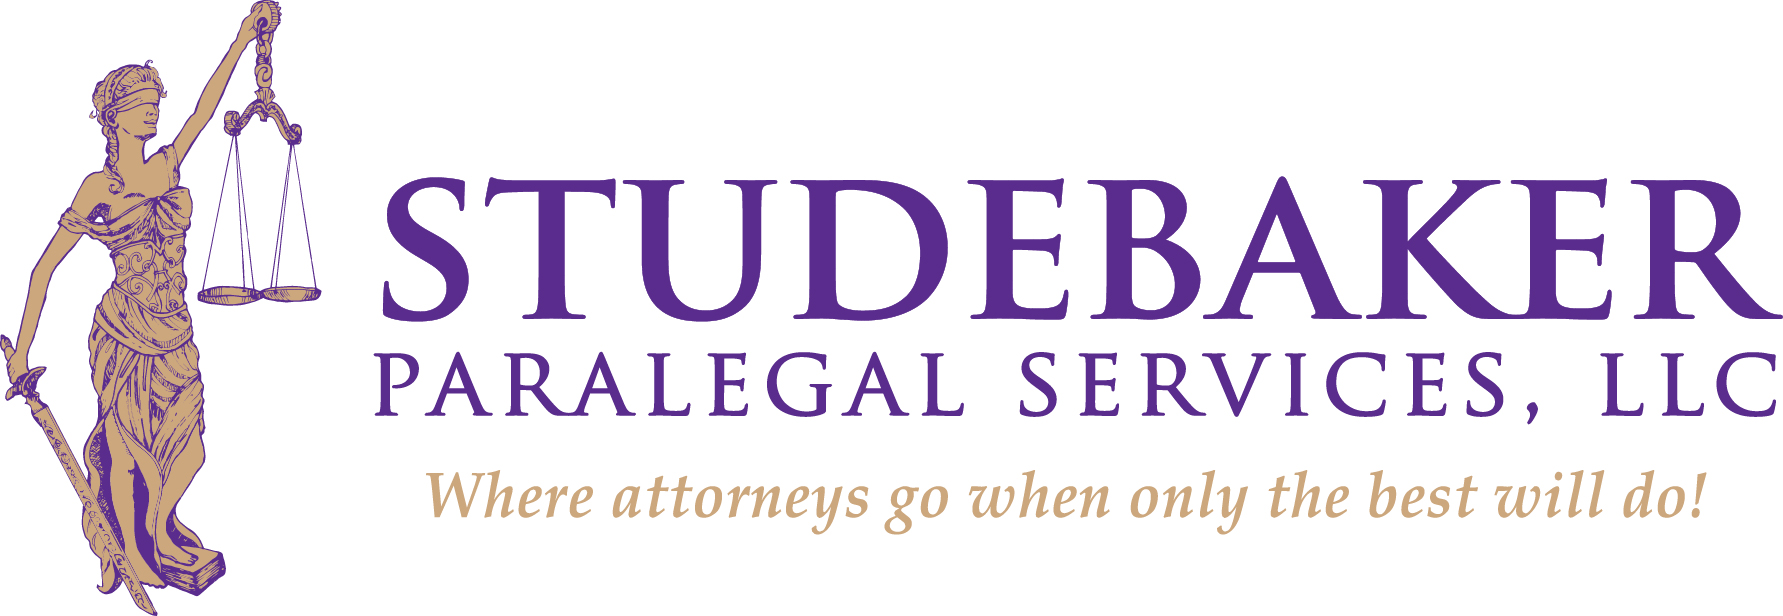 Studebaker Paralegal Services LLC